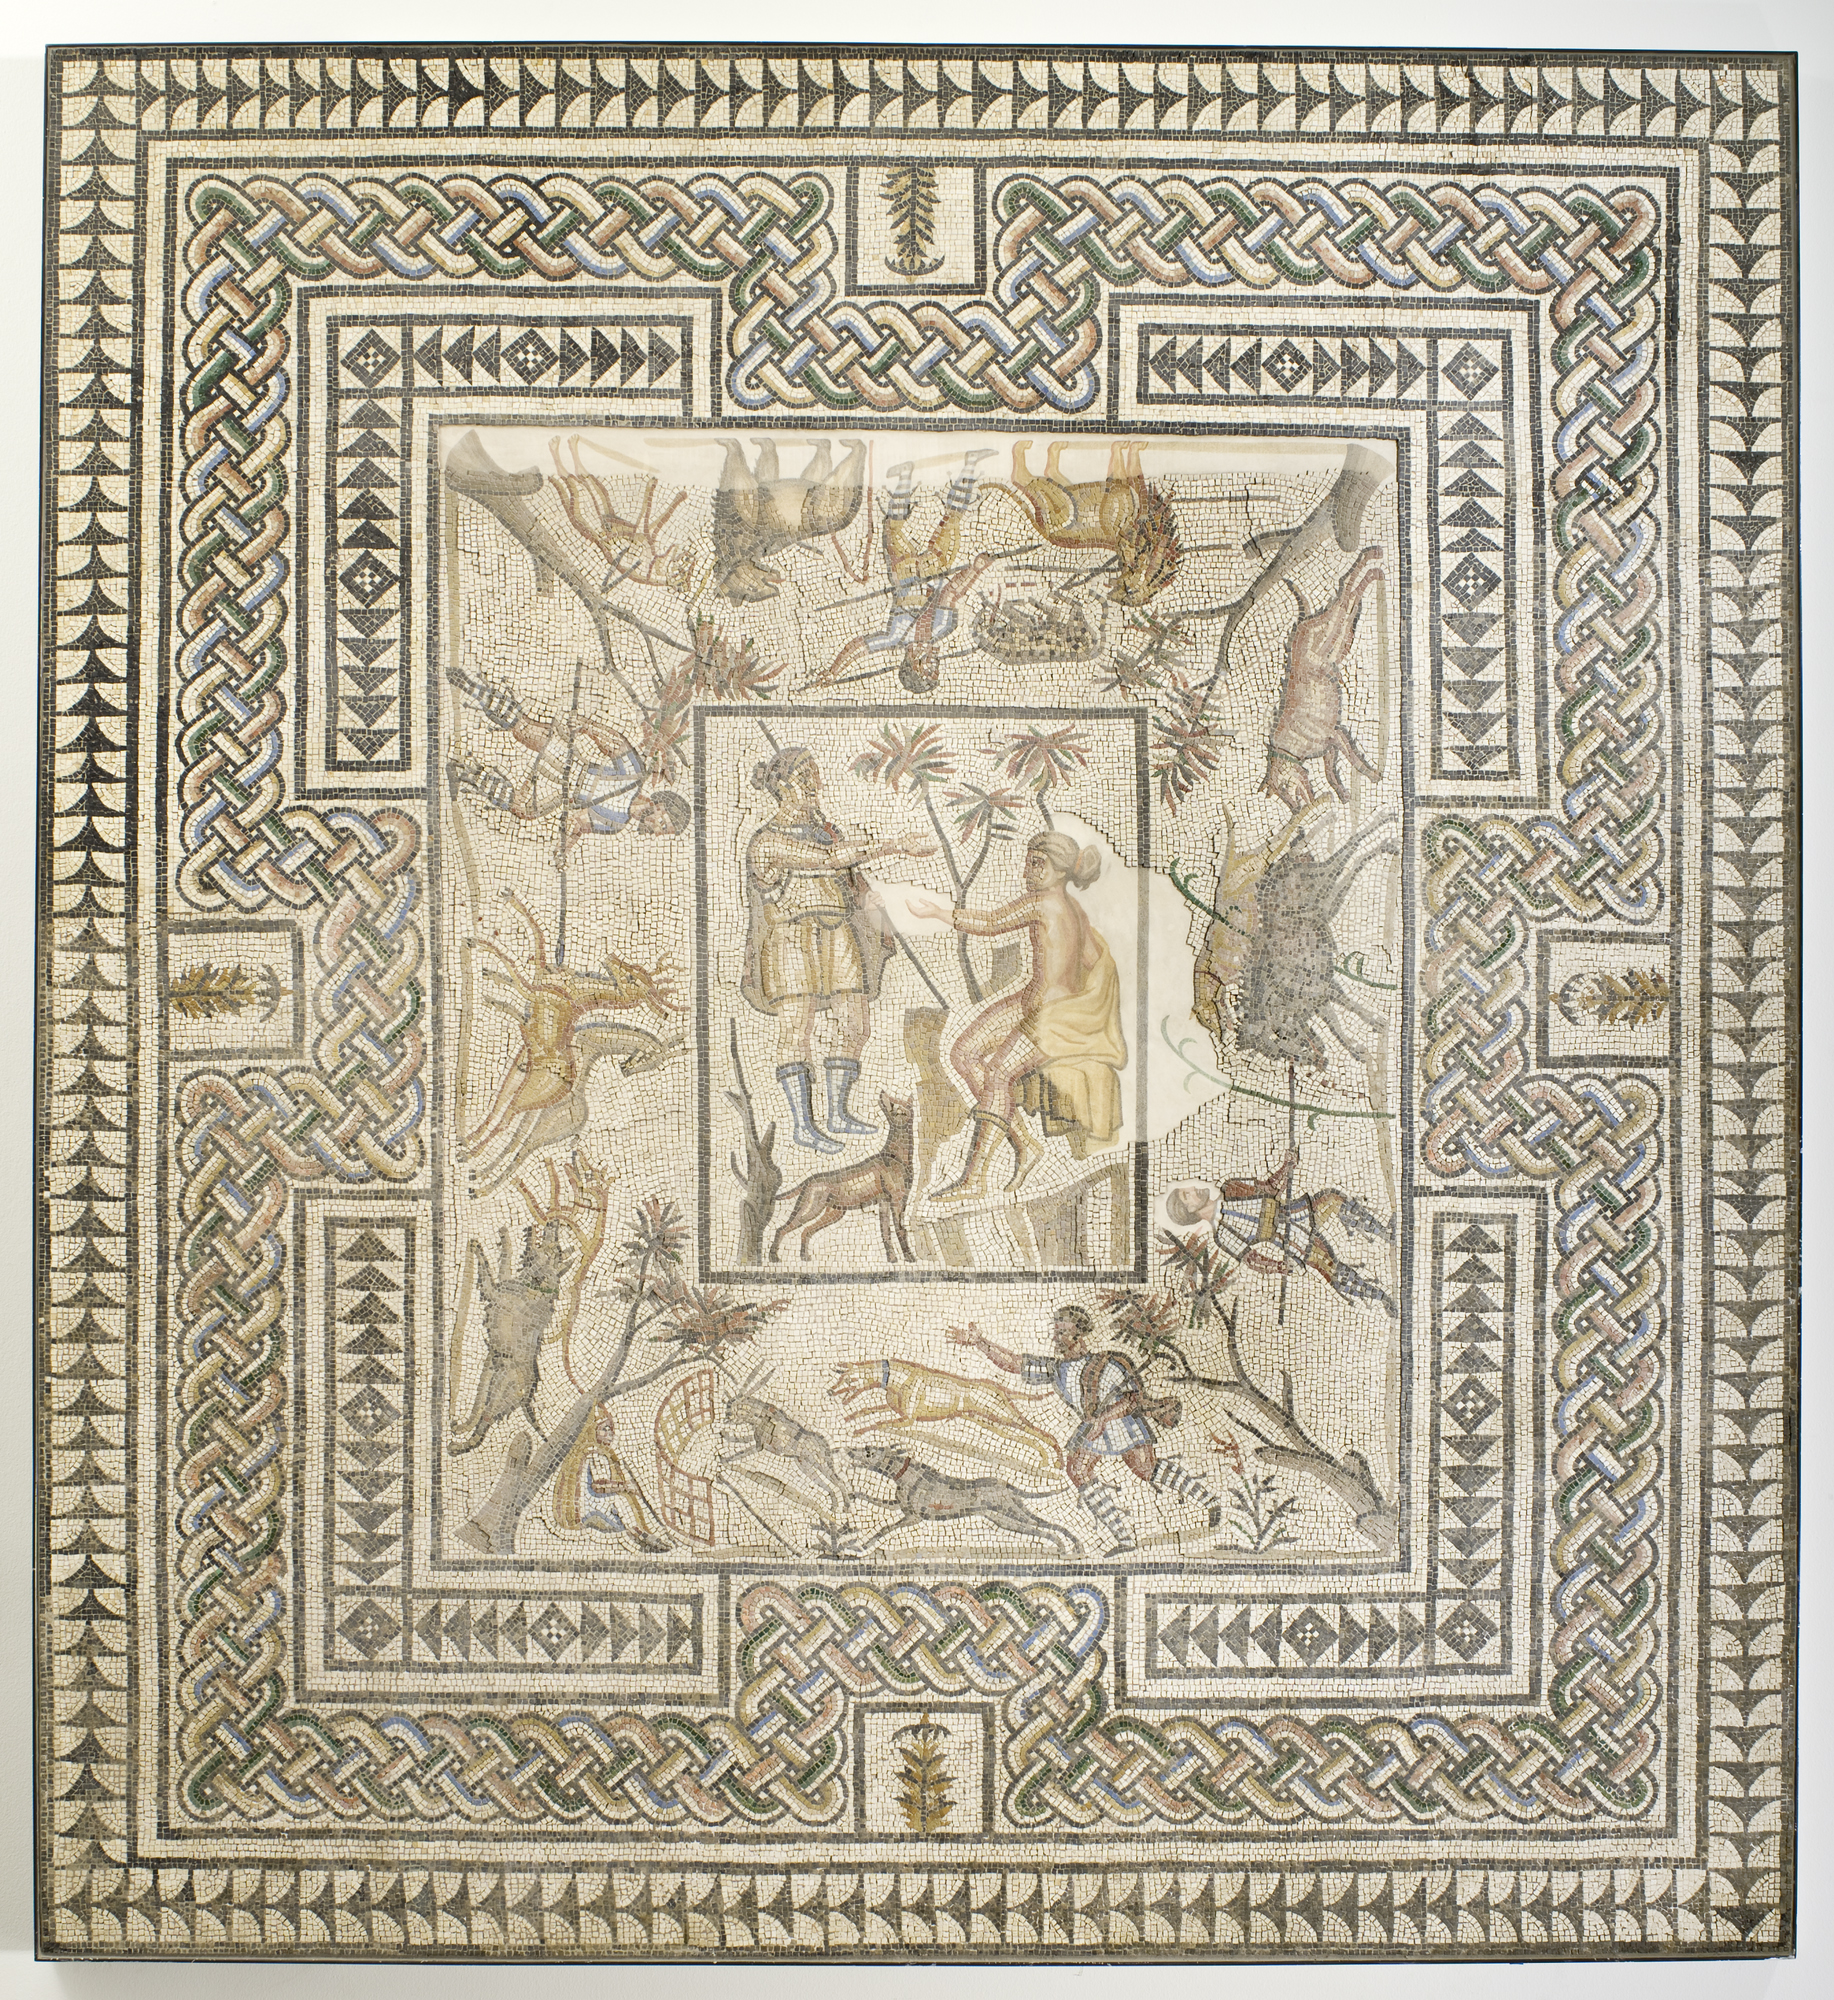 Roman mosaic floor from Villelaure, France with Diana and Callisto Surrounded by Hunt Scenes, A.D. 3rd century. Gallo-Roman mosaic, colored marble, limestone, and glass tesserae. D: 296.6 × 271.8 × 6.4 cm (116 3/4 × 107 × 2 1/2 in.) Los Angeles County Museum of Art, The Phil Berg Collection. Image courtesy of the Los Angeles County Museum of Art, The Phil Berg Collection.